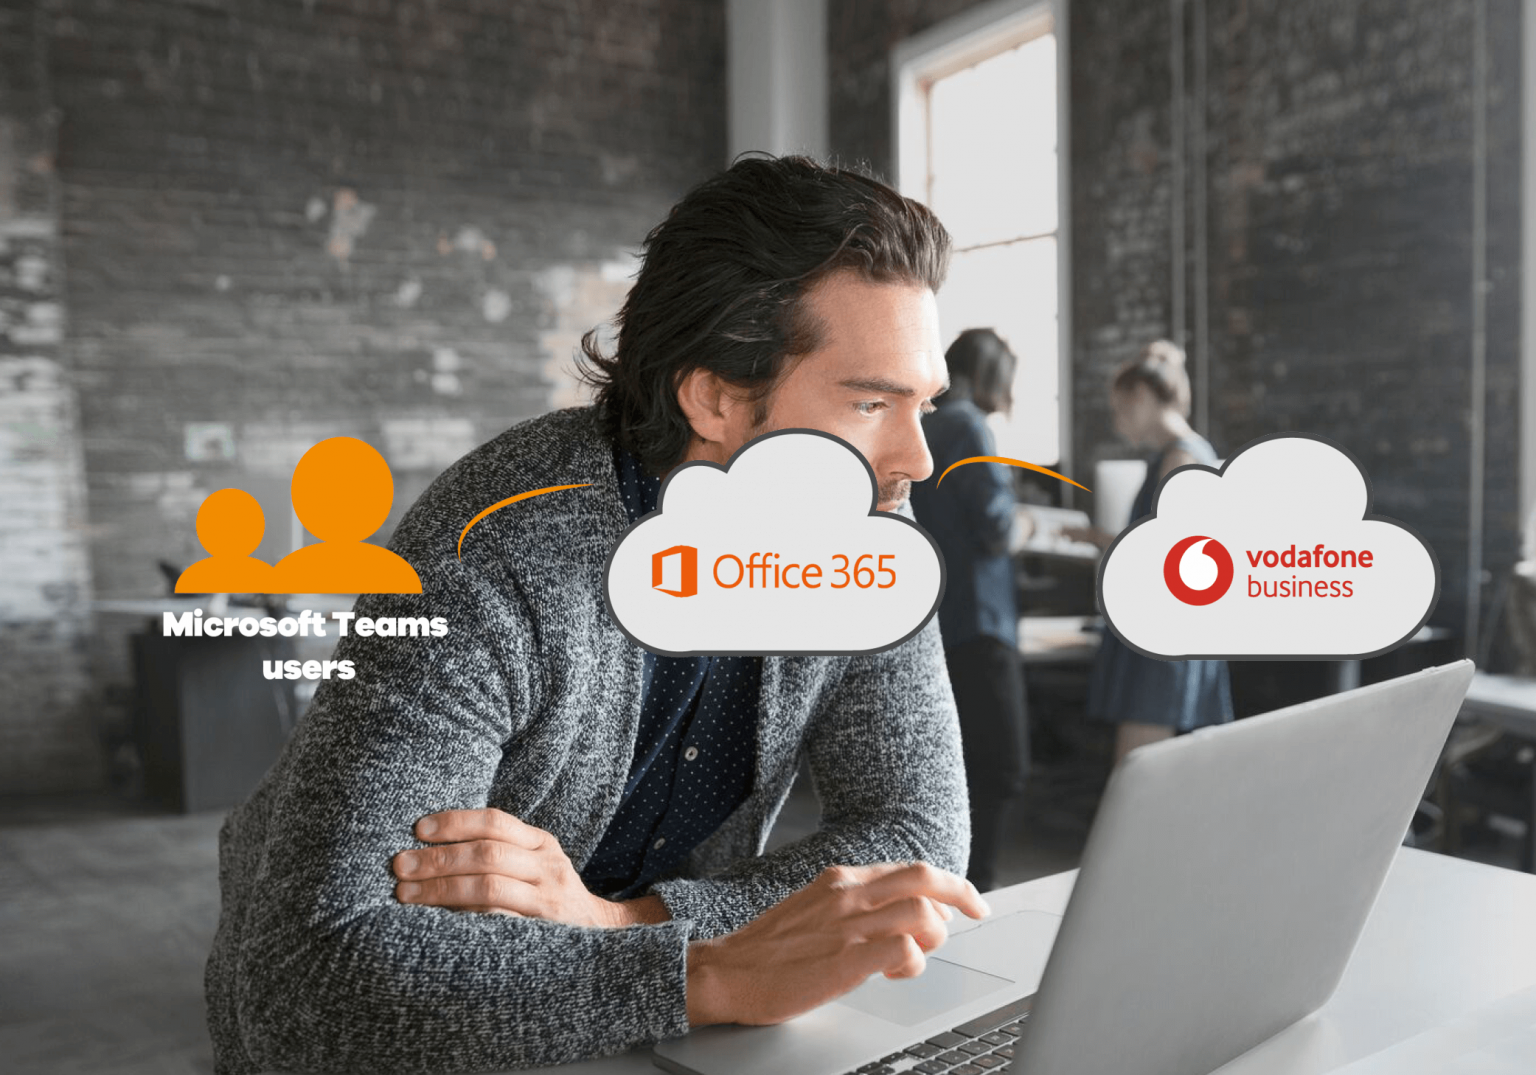 Vodafone calling in office 365.